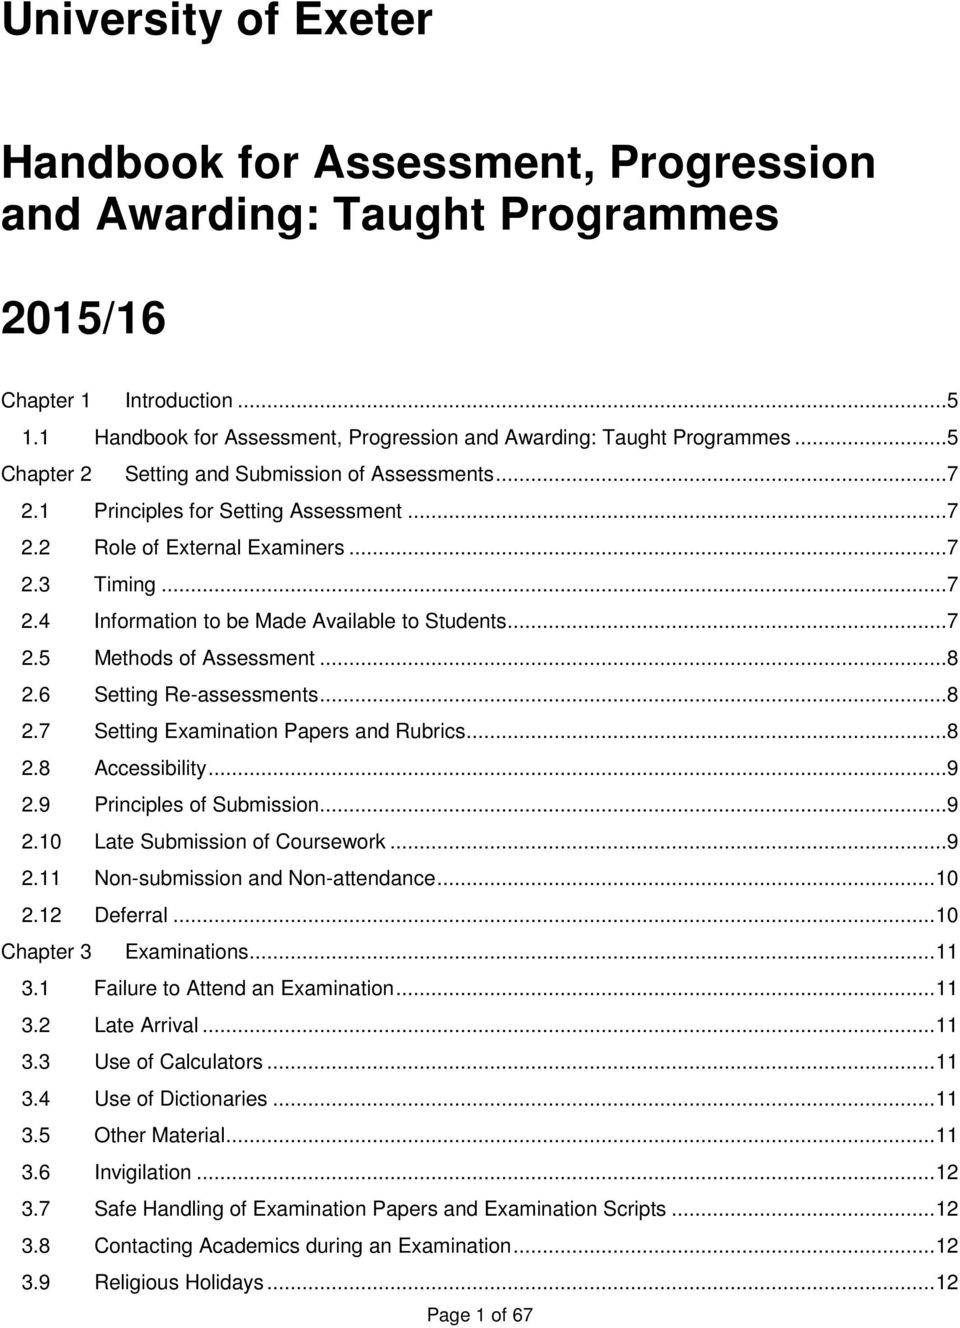 .. 7 2.5 Methods of Assessment... 8 2.6 Setting Re-assessments... 8 2.7 Setting Examination Papers and Rubrics... 8 2.8 Accessibility... 9 2.9 Principles of Submission... 9 2.10 Late Submission of Coursework.